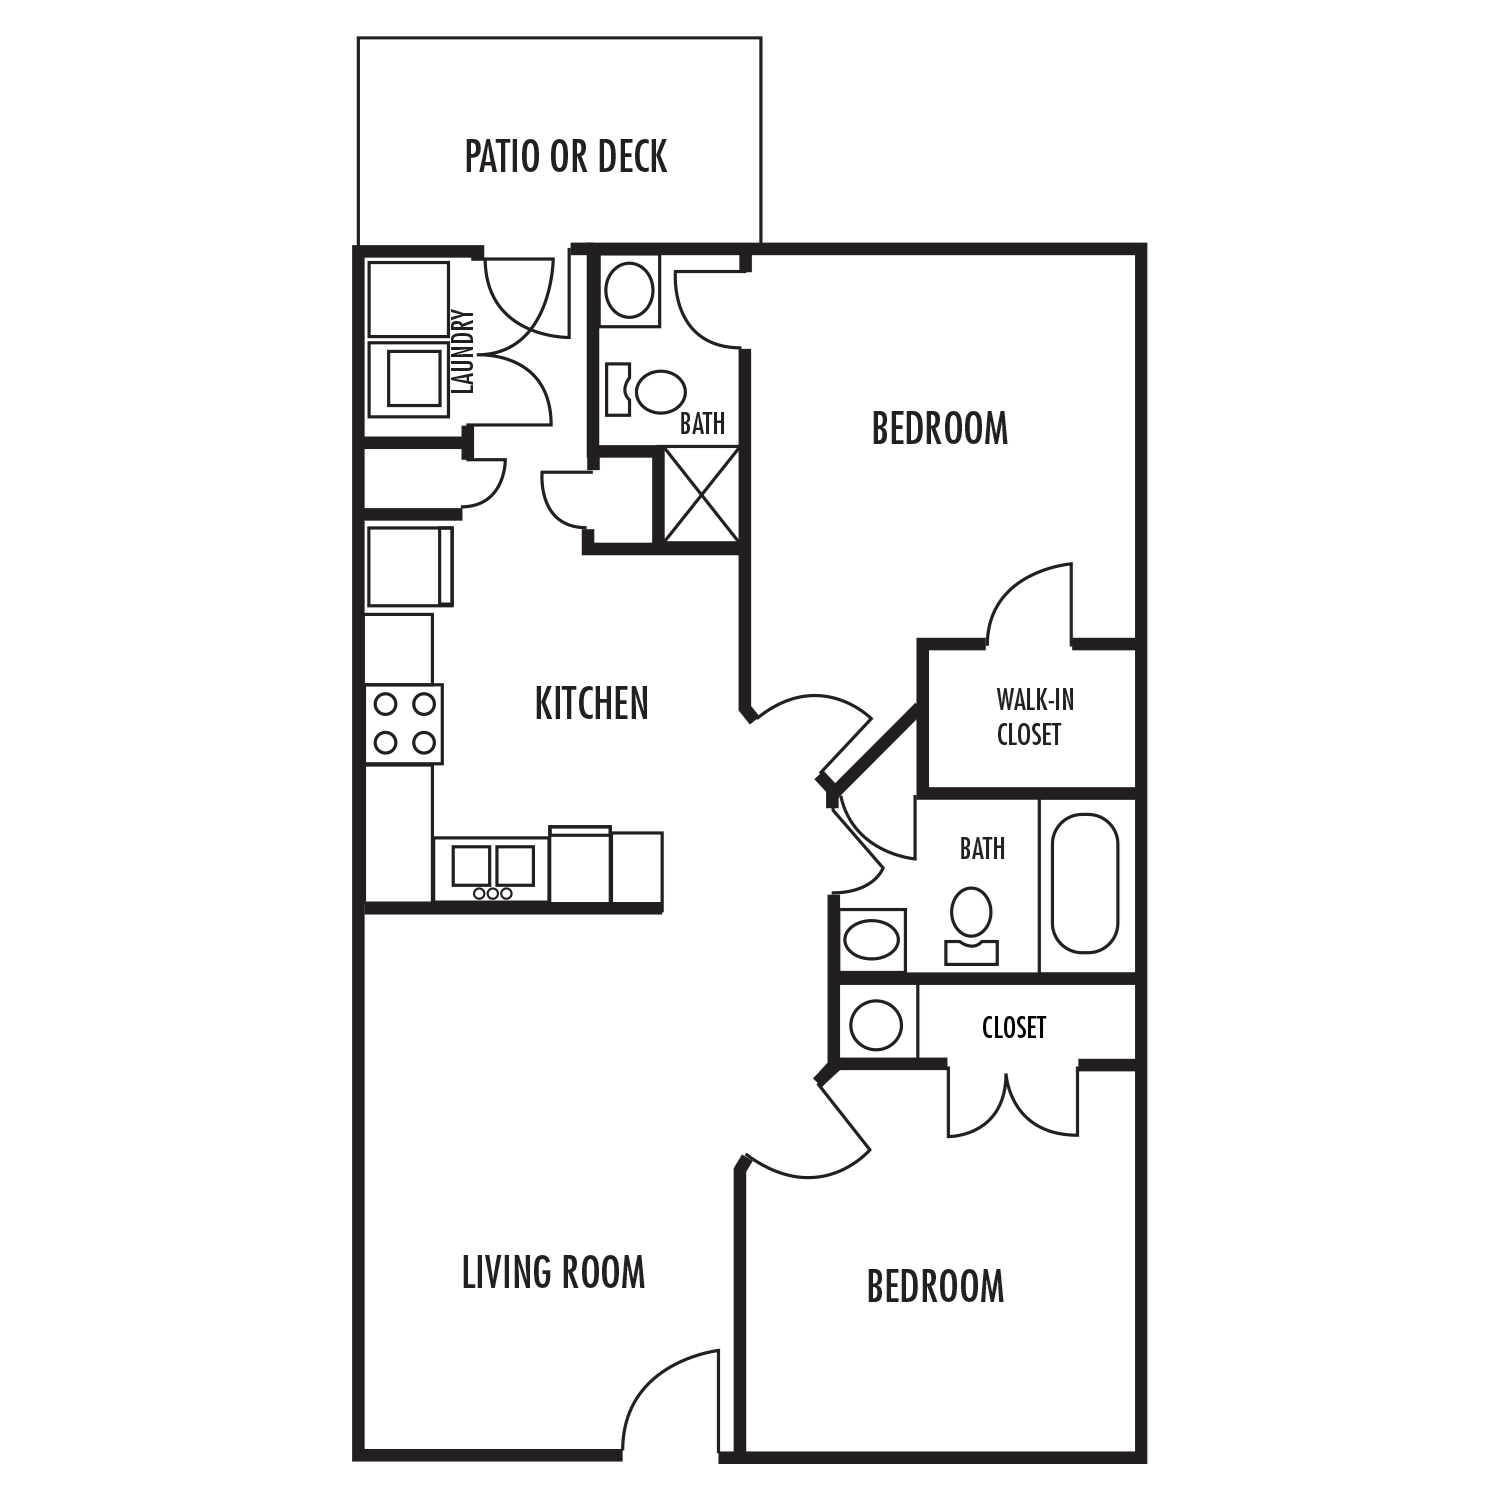 Floor Plans Of The Village At Brierfield In Charlotte Nc